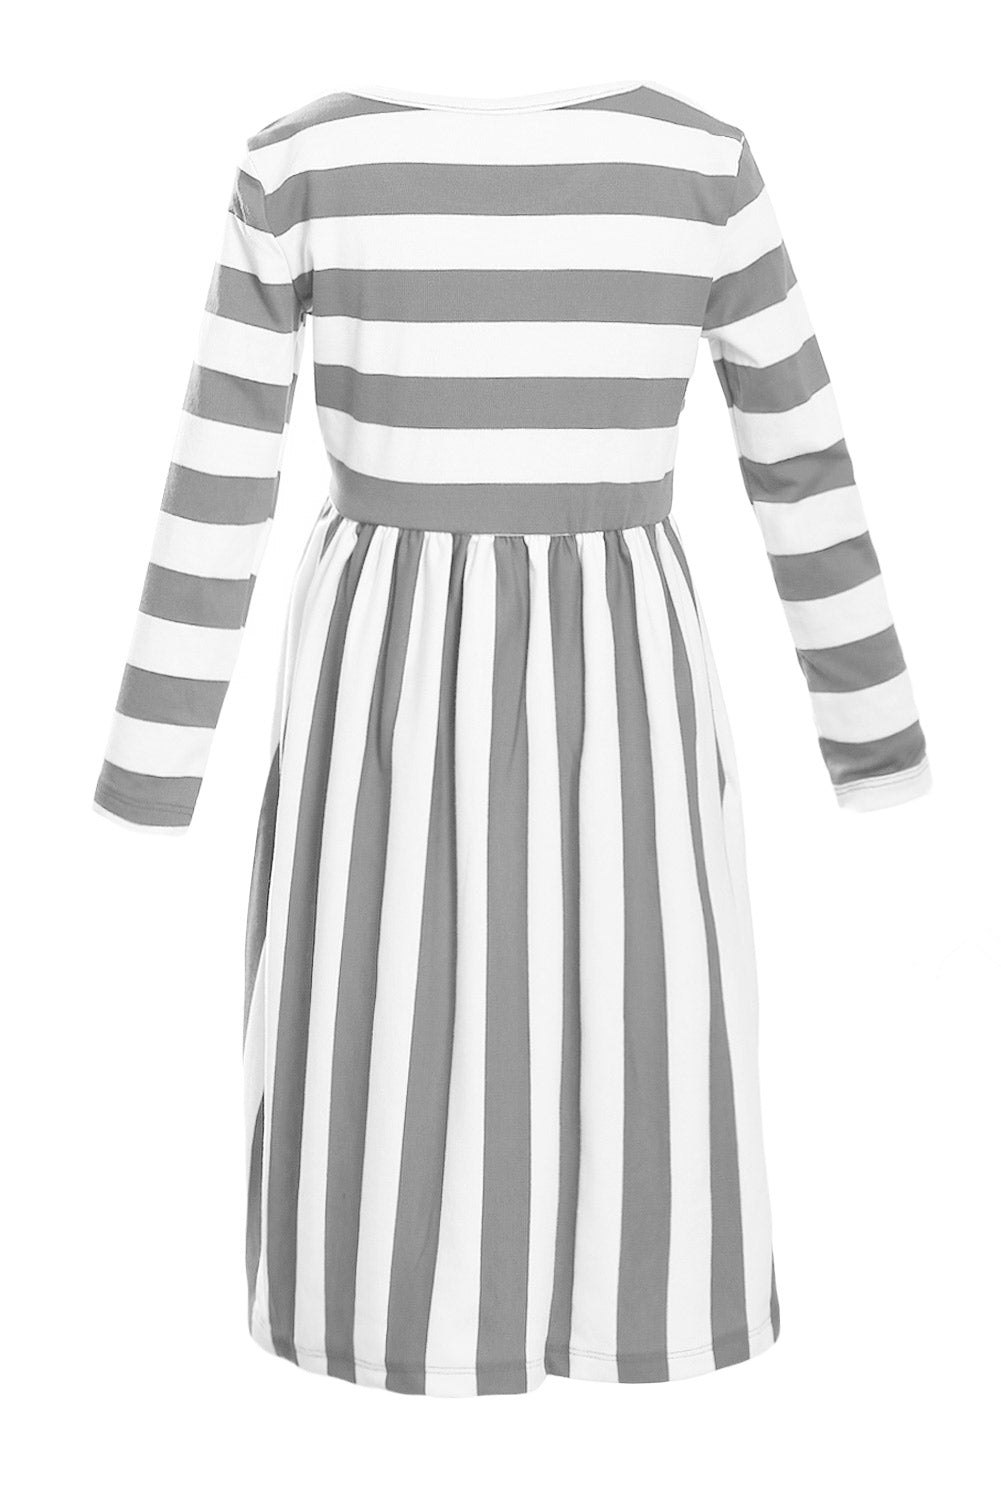 Gray White Striped Long Sleeve Dress for Kids